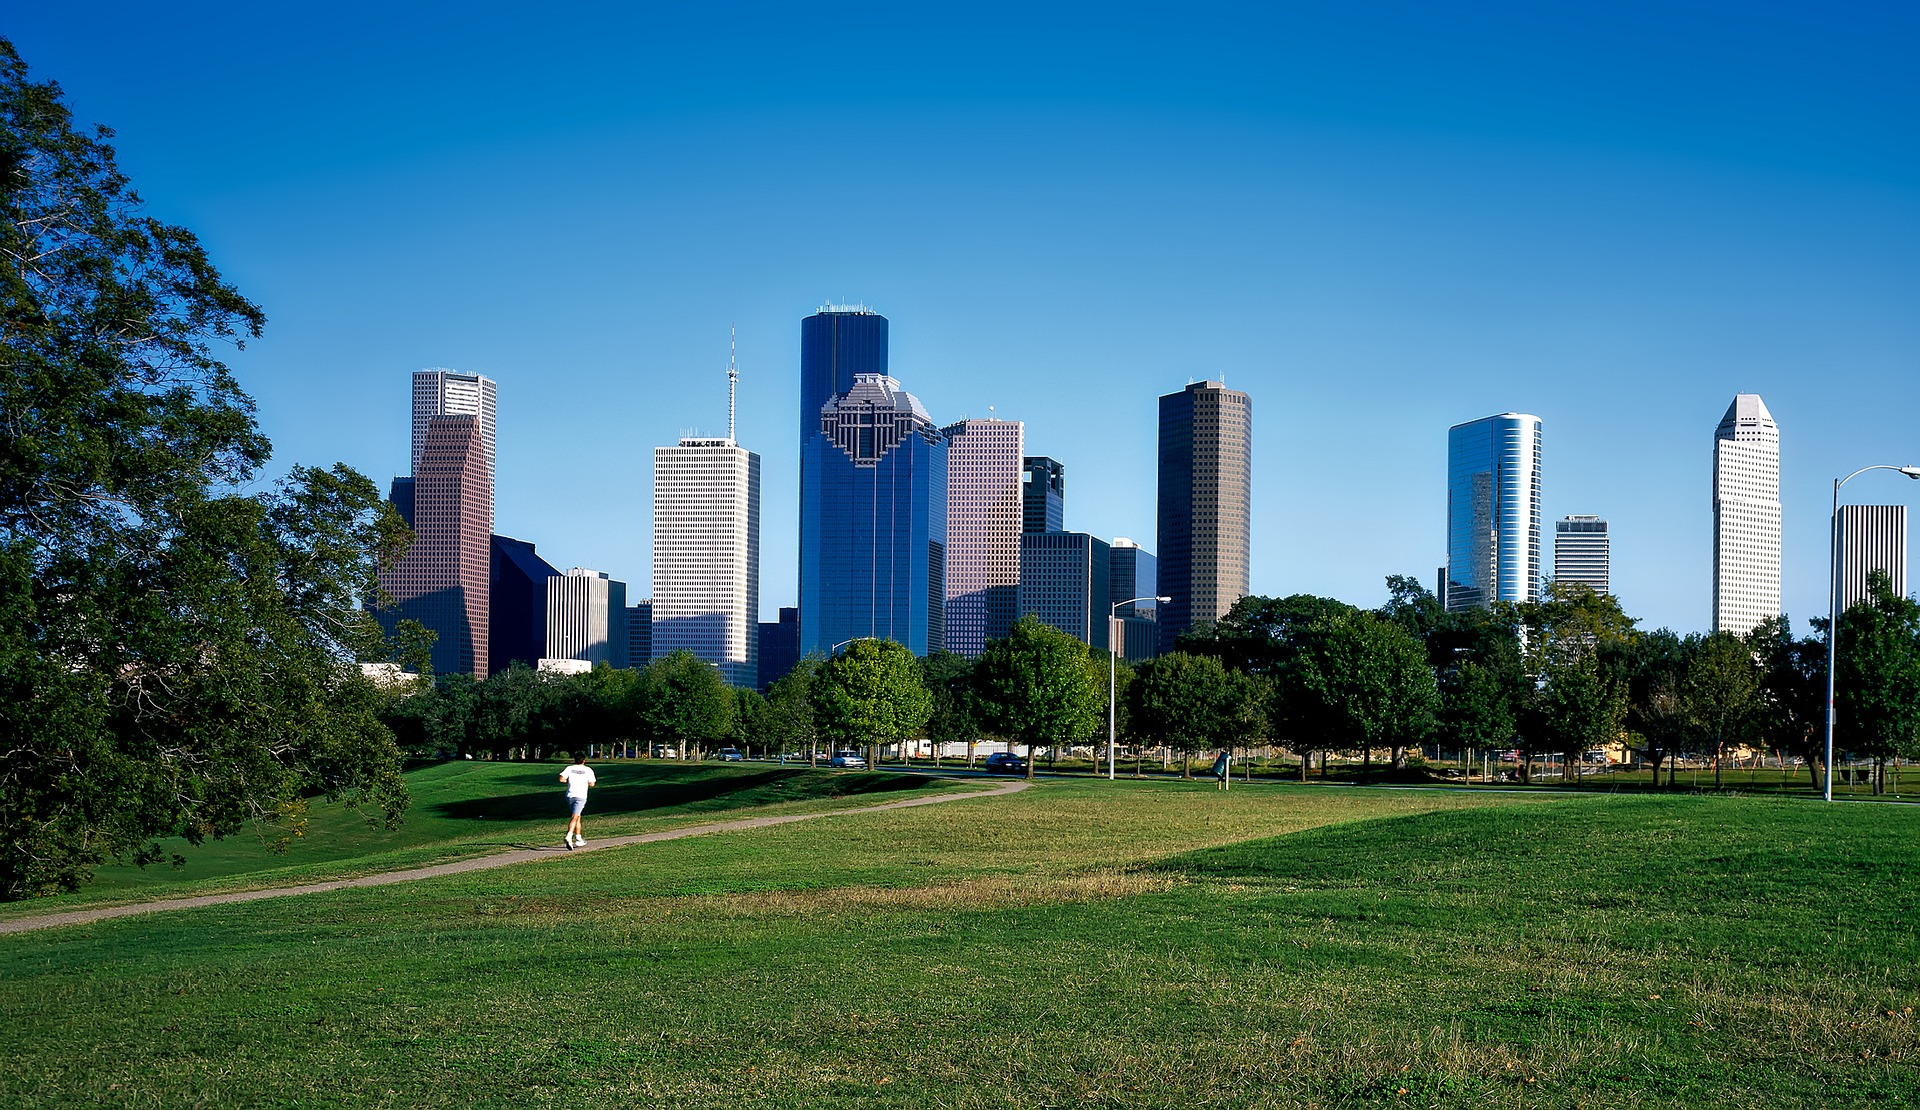 Get Yourself a Great Comfortable Ride in Houston